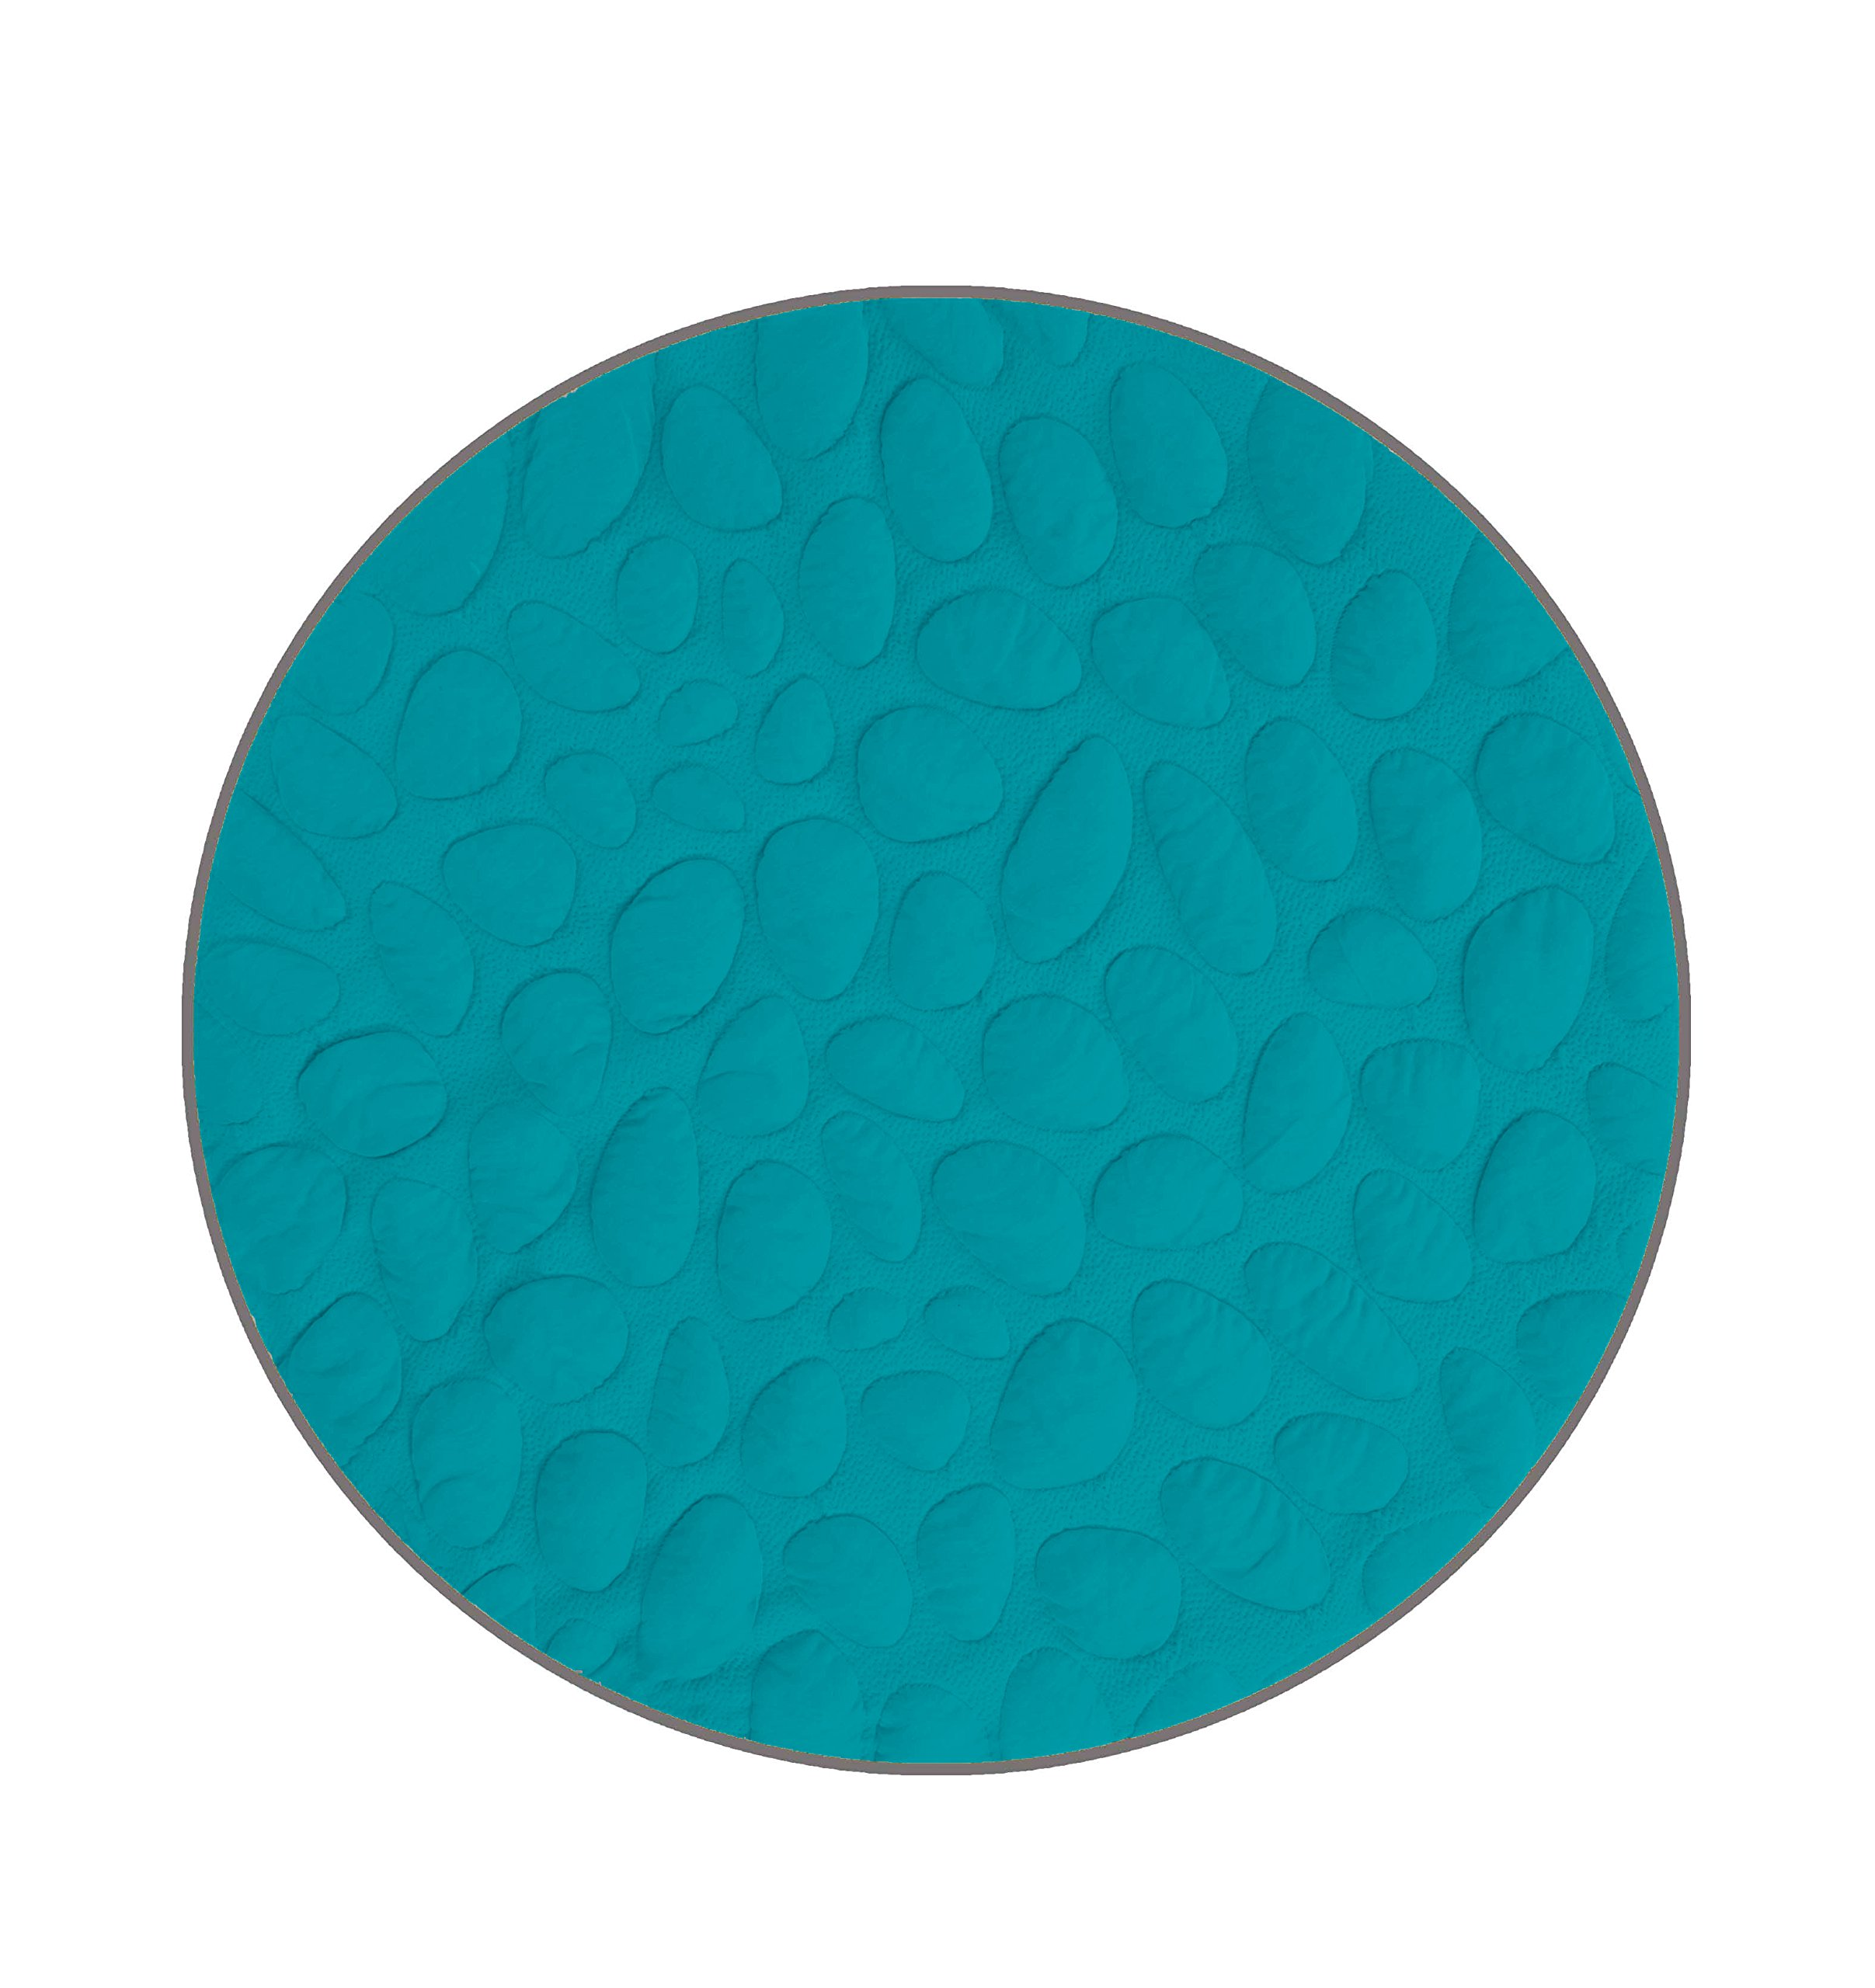 Nook Sleep Lily Pad Playmat, Peacock by Nook Sleep Systems (Image #1)